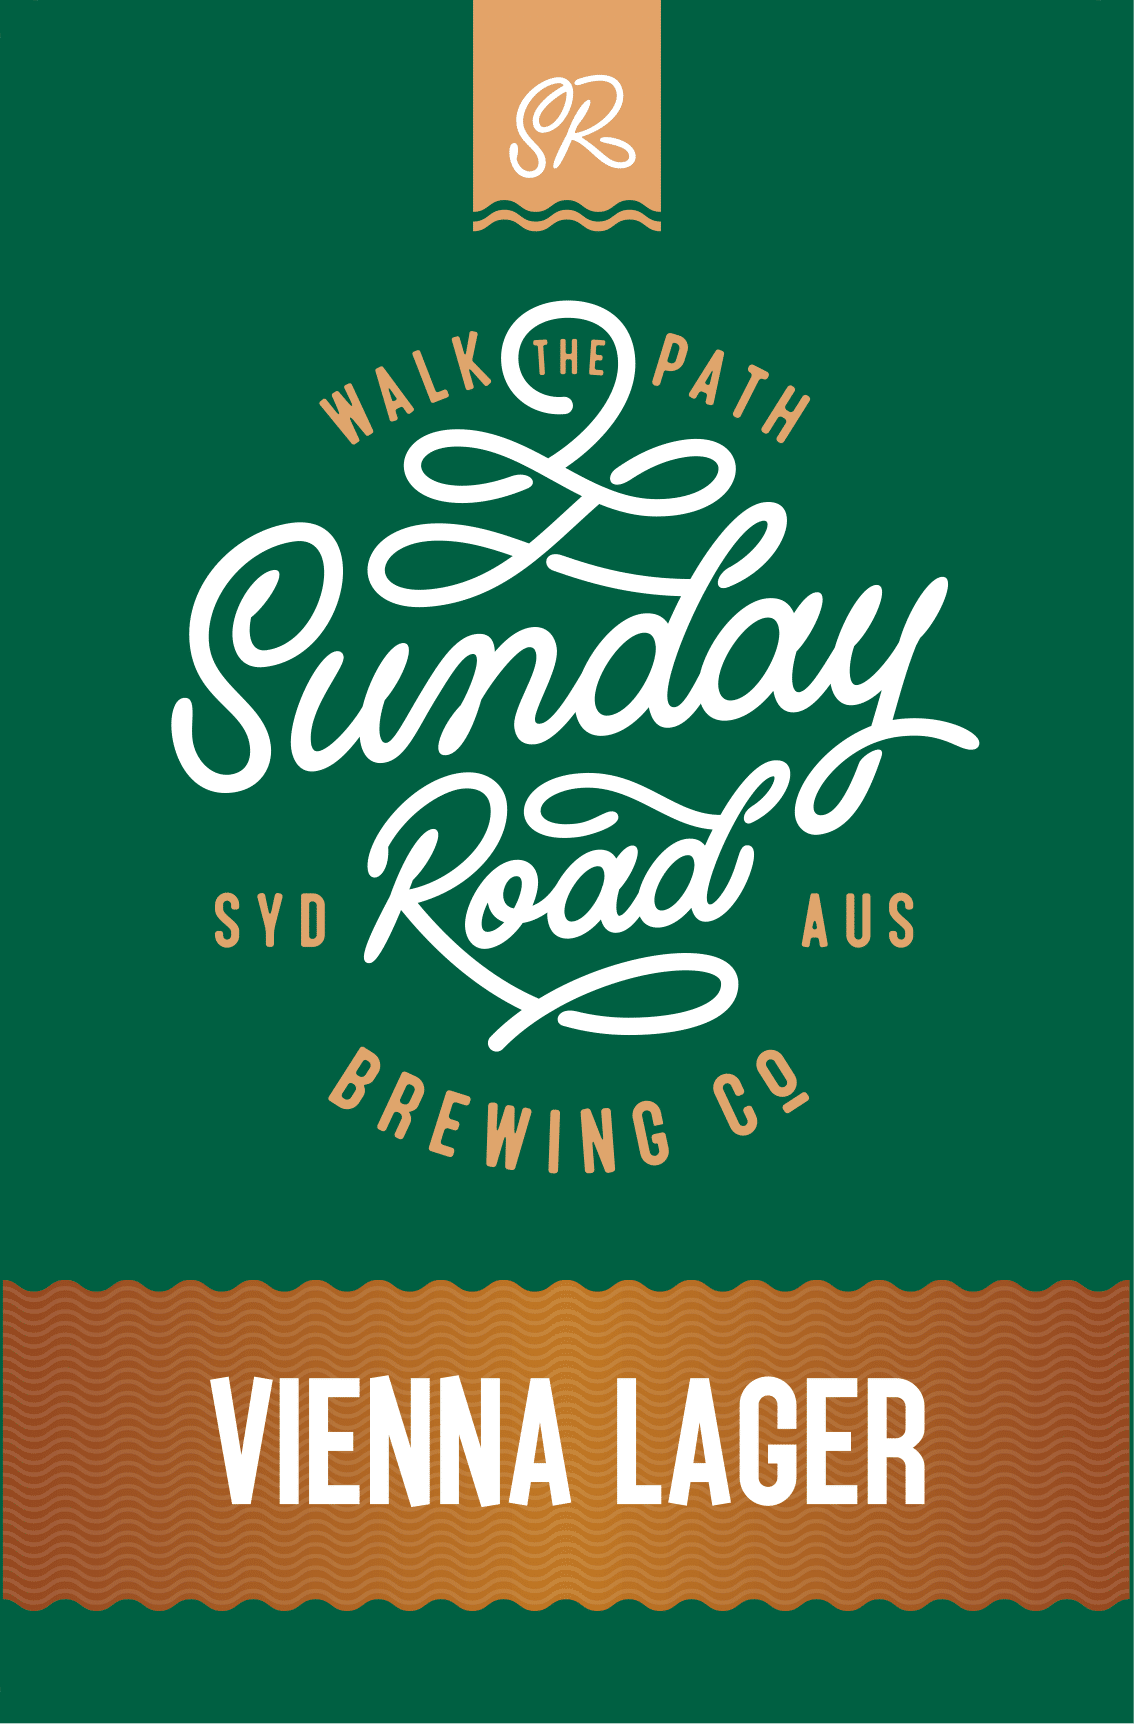 Sunday Road Vienna Lager